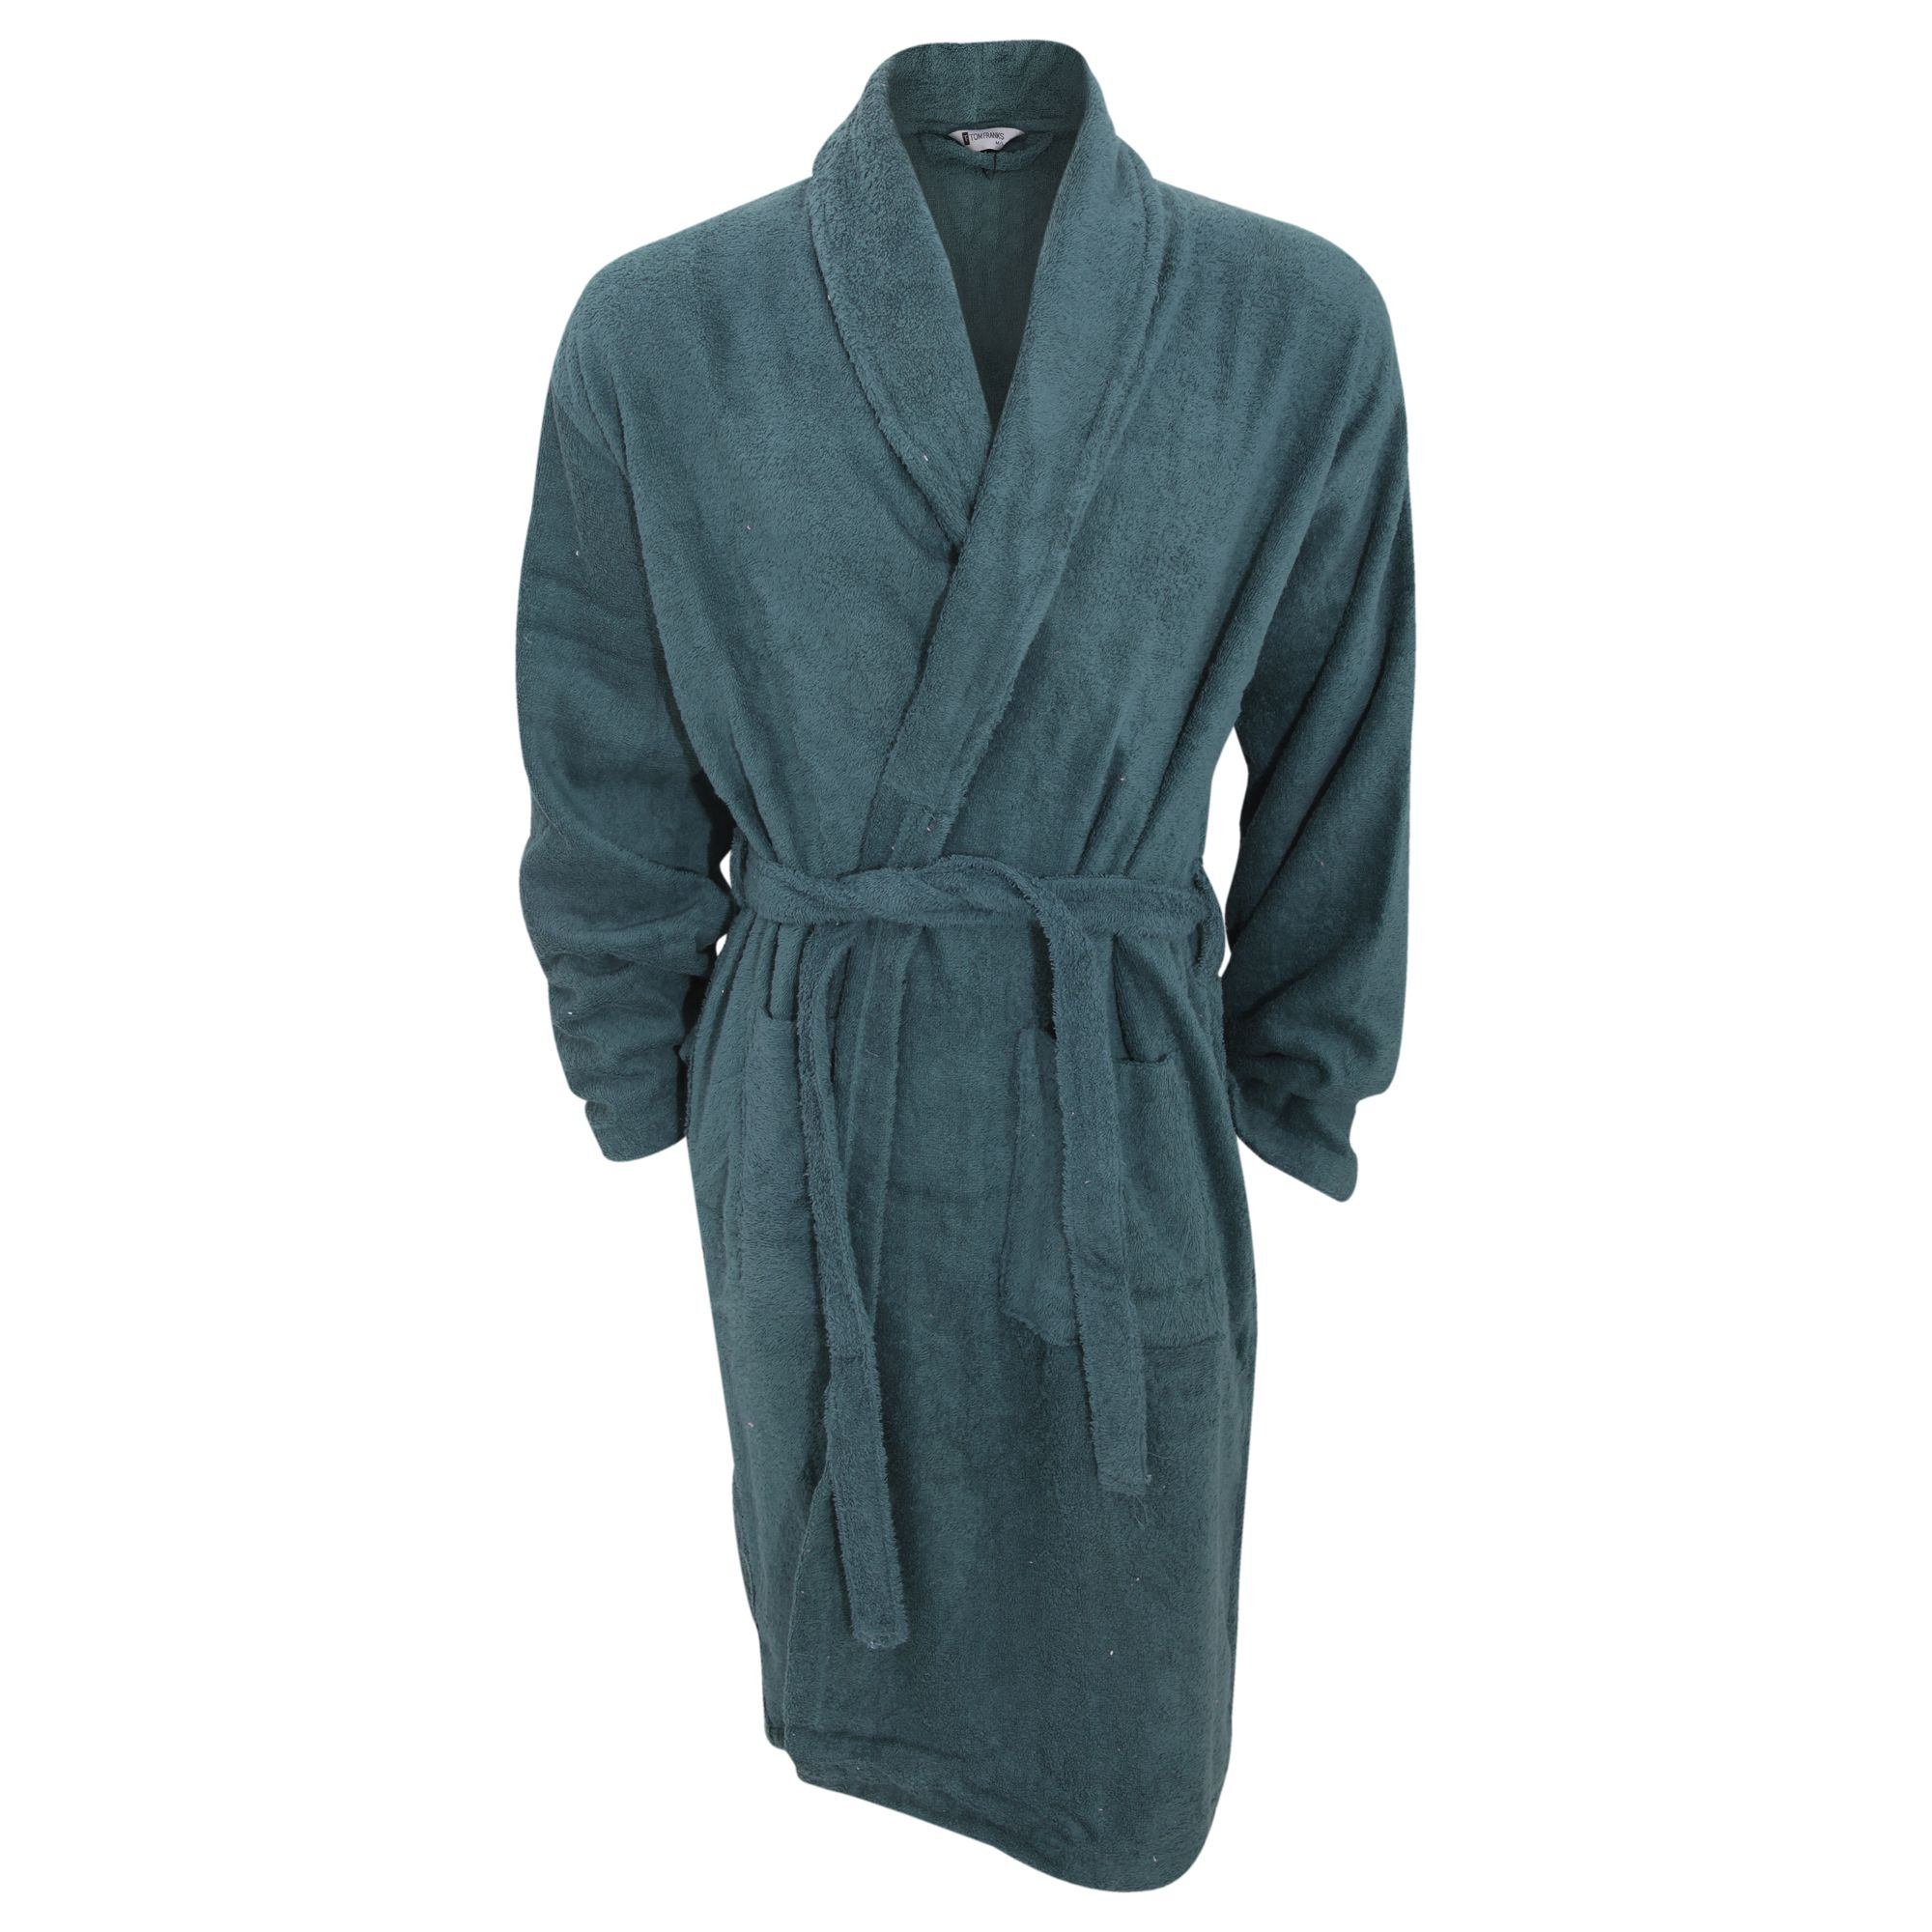 Mens Plain Cotton Towelling Robe (£19.95) || With a heavy-duty ...